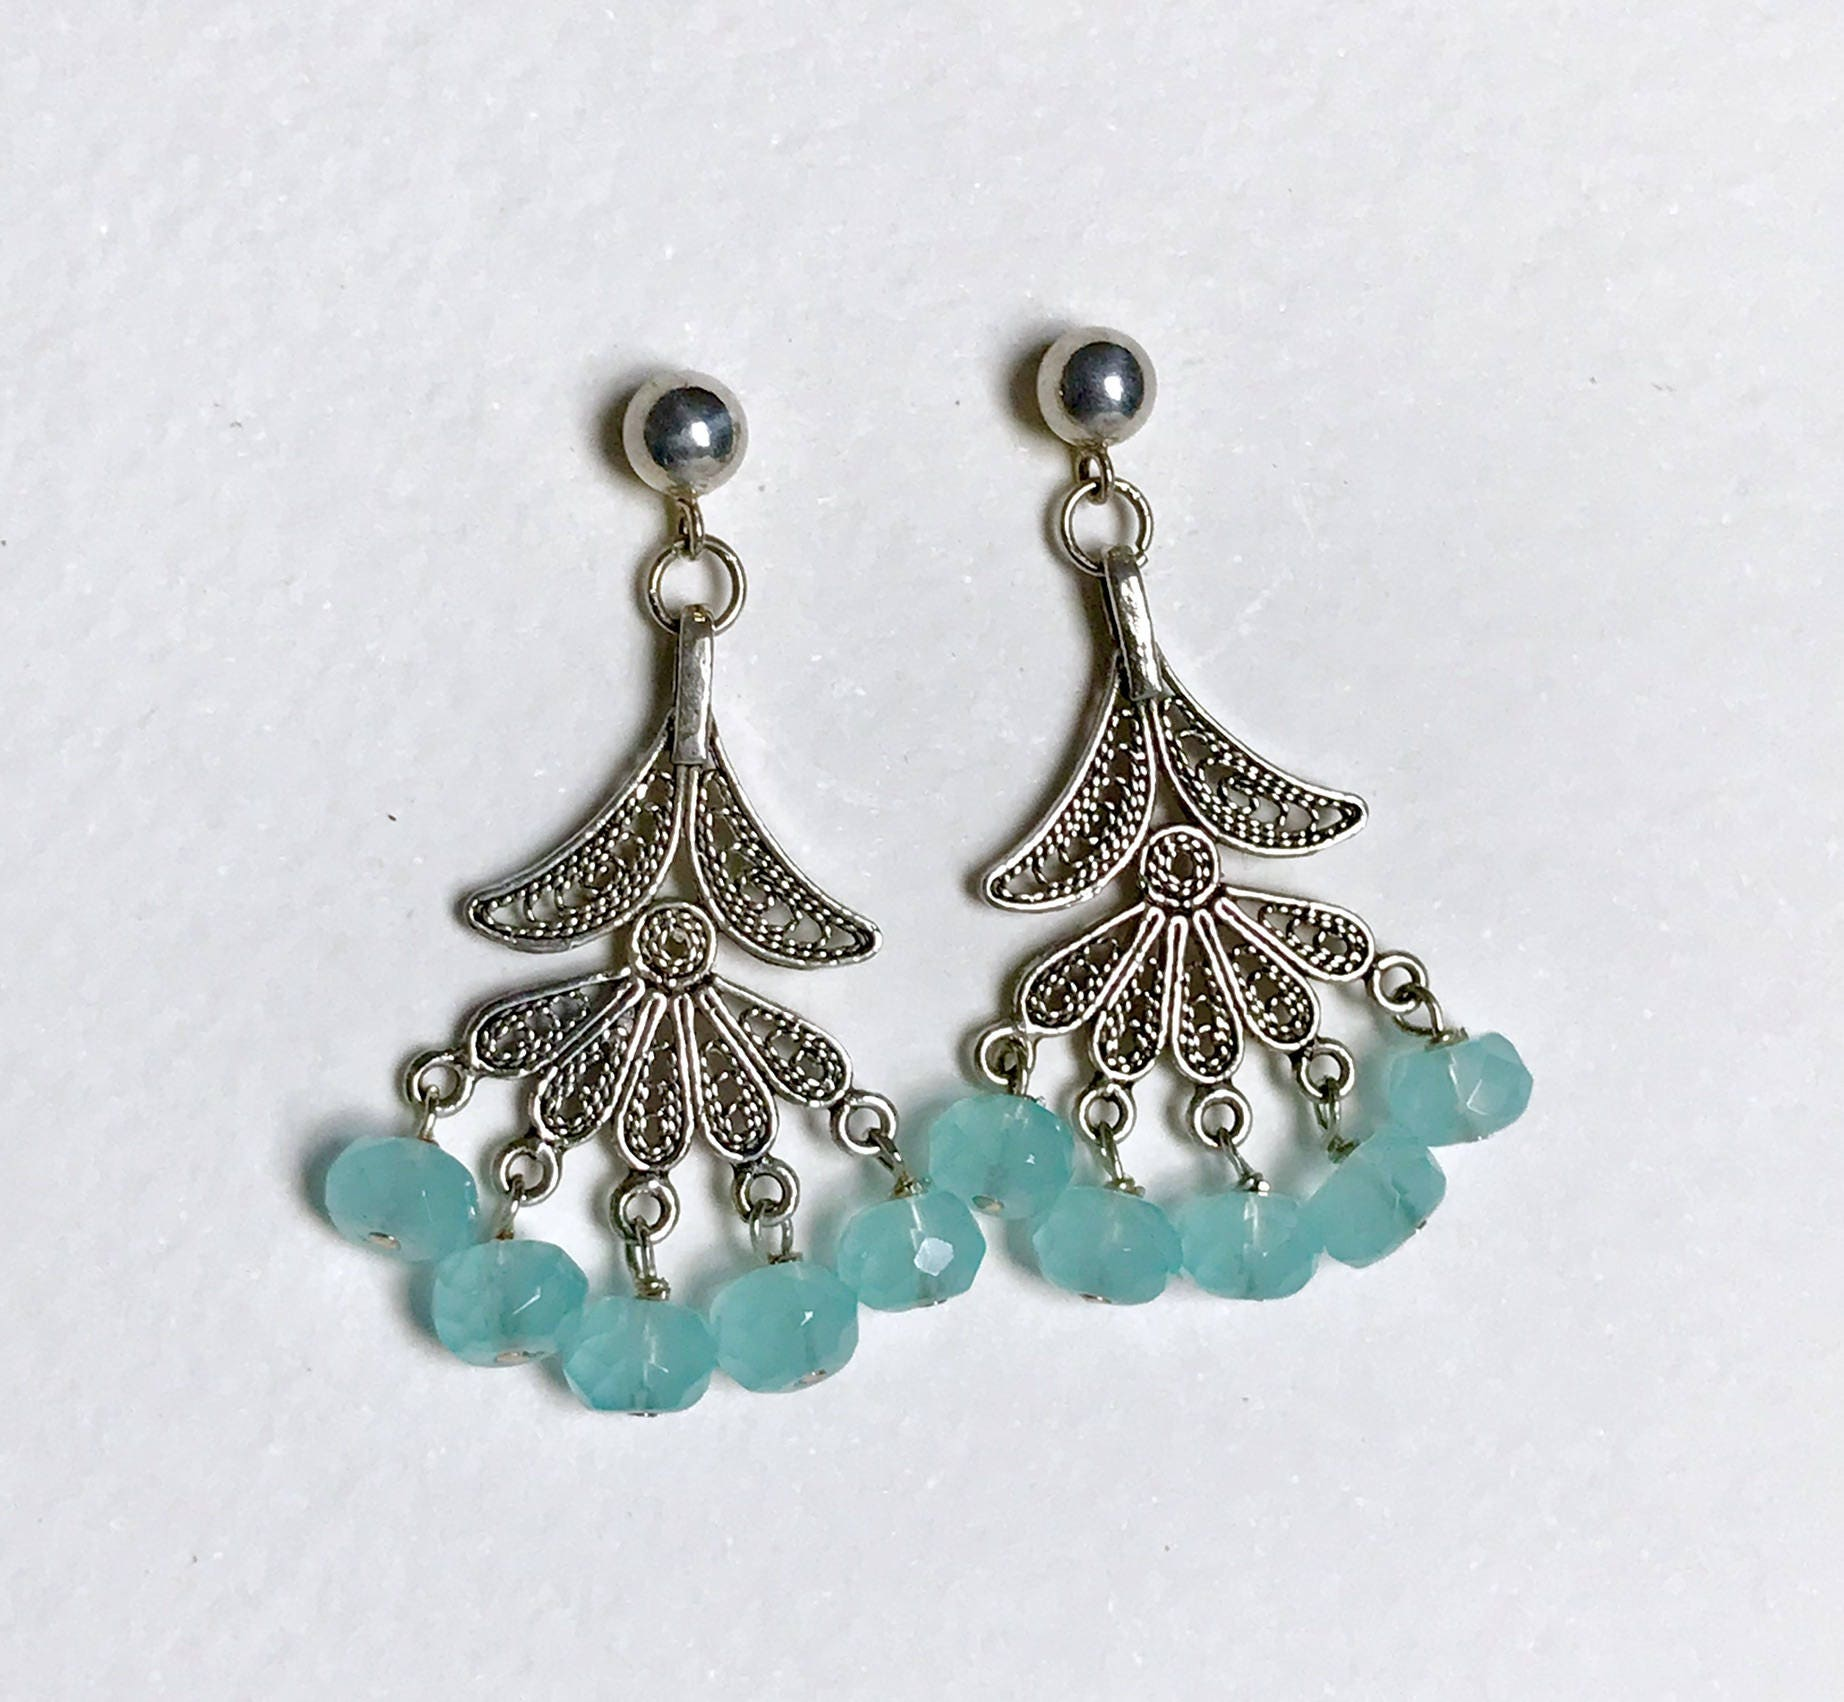 Chalcedony Quartz Filigree Chandelier Earrings by KarenWhalenDesigns